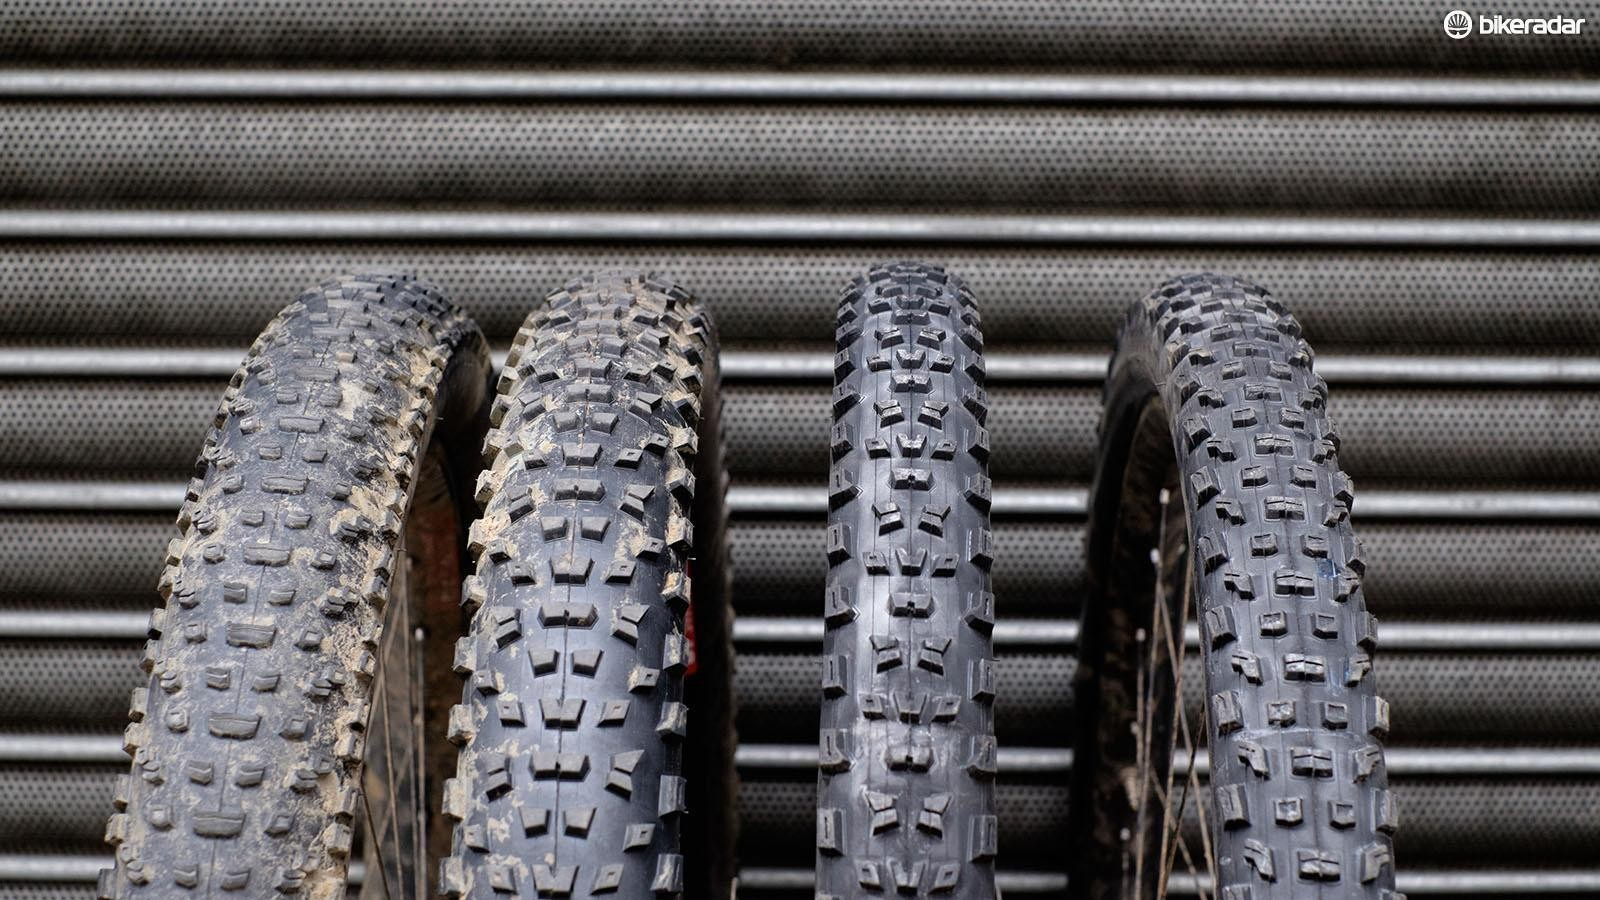 New rubber is a surefire way to improve your bike's performance without breaking the bank